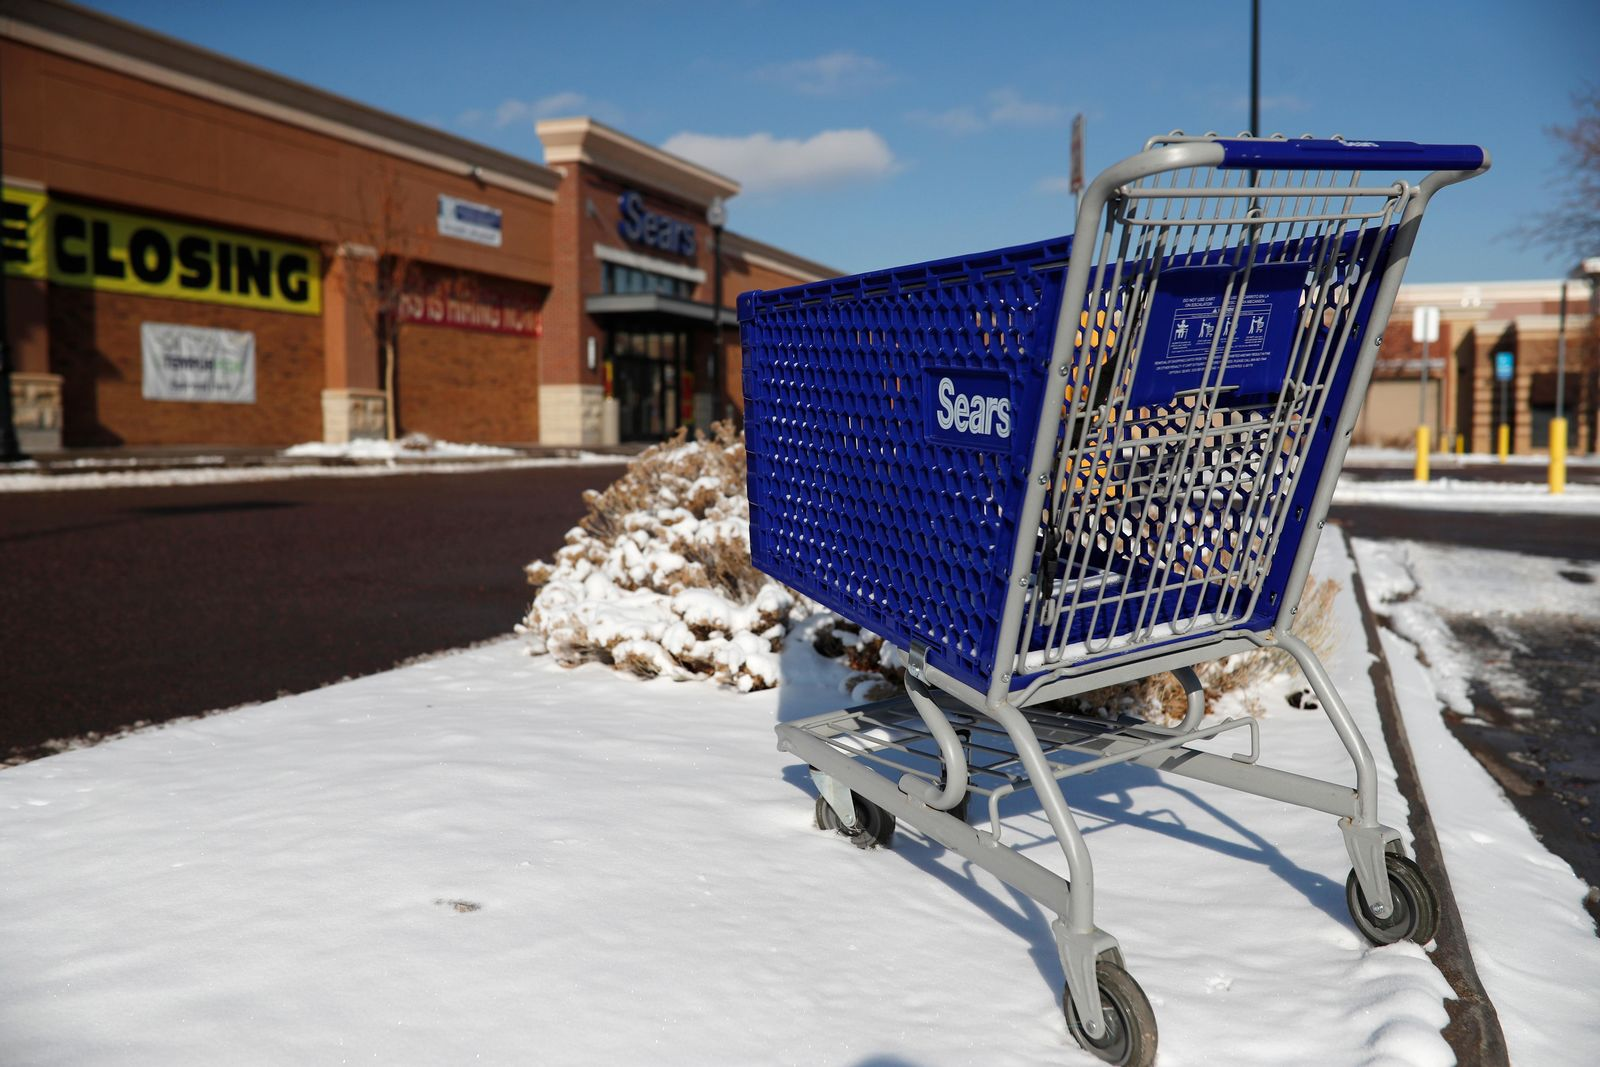 FILE - In this Jan. 1, 2019, file photo, an empty shopping cart sits outside a Sears store in the Streets of Southglenn mall in Littleton, Colo. Nine months out of bankruptcy, Sears is limping into the holiday shopping season. (AP Photo/David Zalubowski, File)